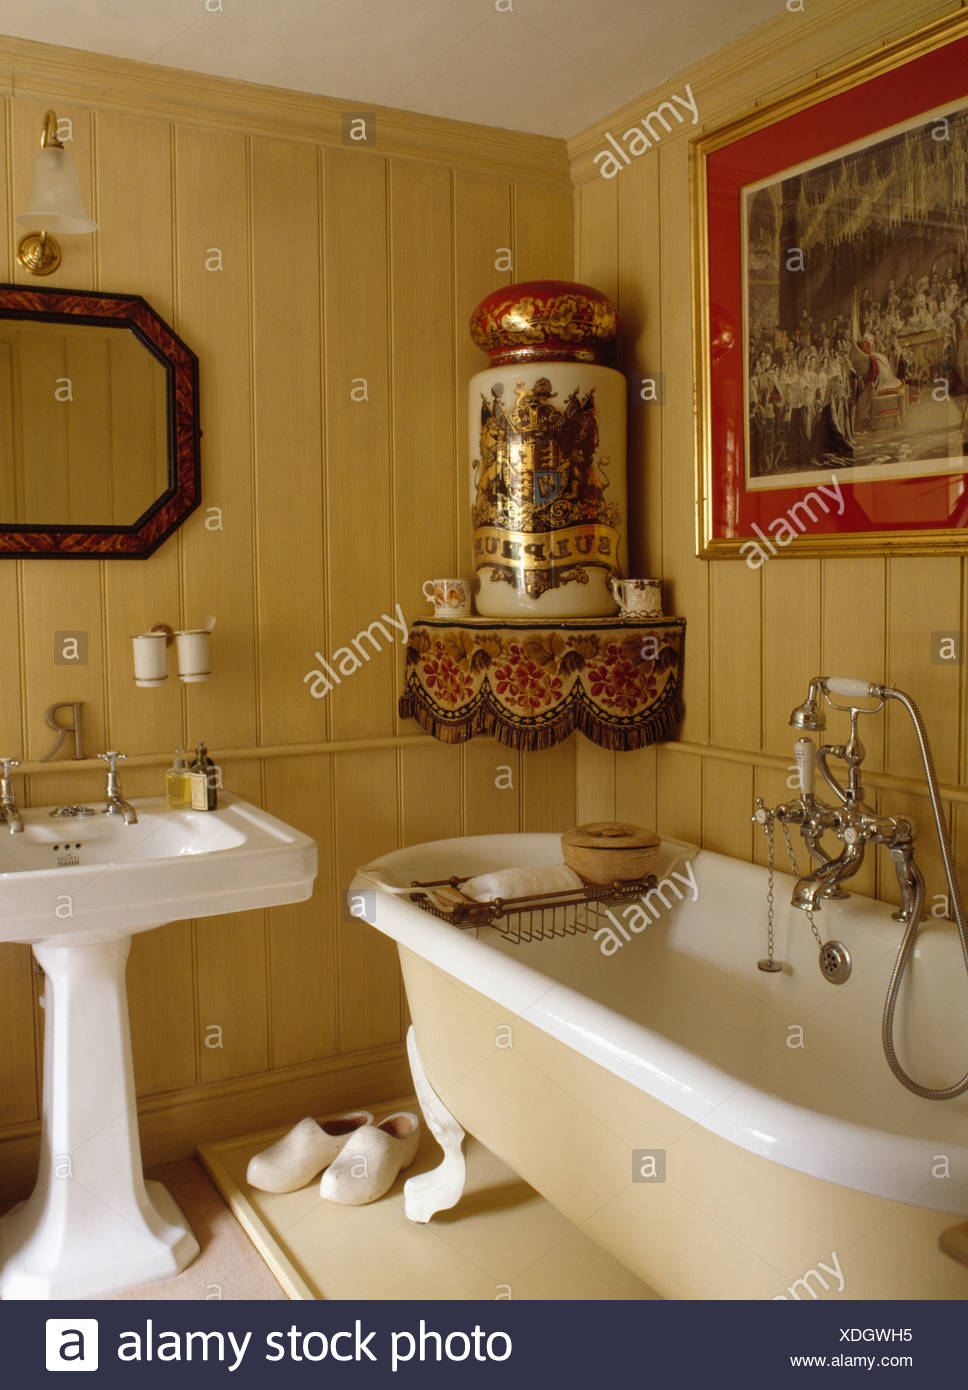 Large Antique Pot On Corner Shelf Above Clawfoot Bath In Neutral Panelled Bathroom With White Pedestal Basin Stock Photo Alamy